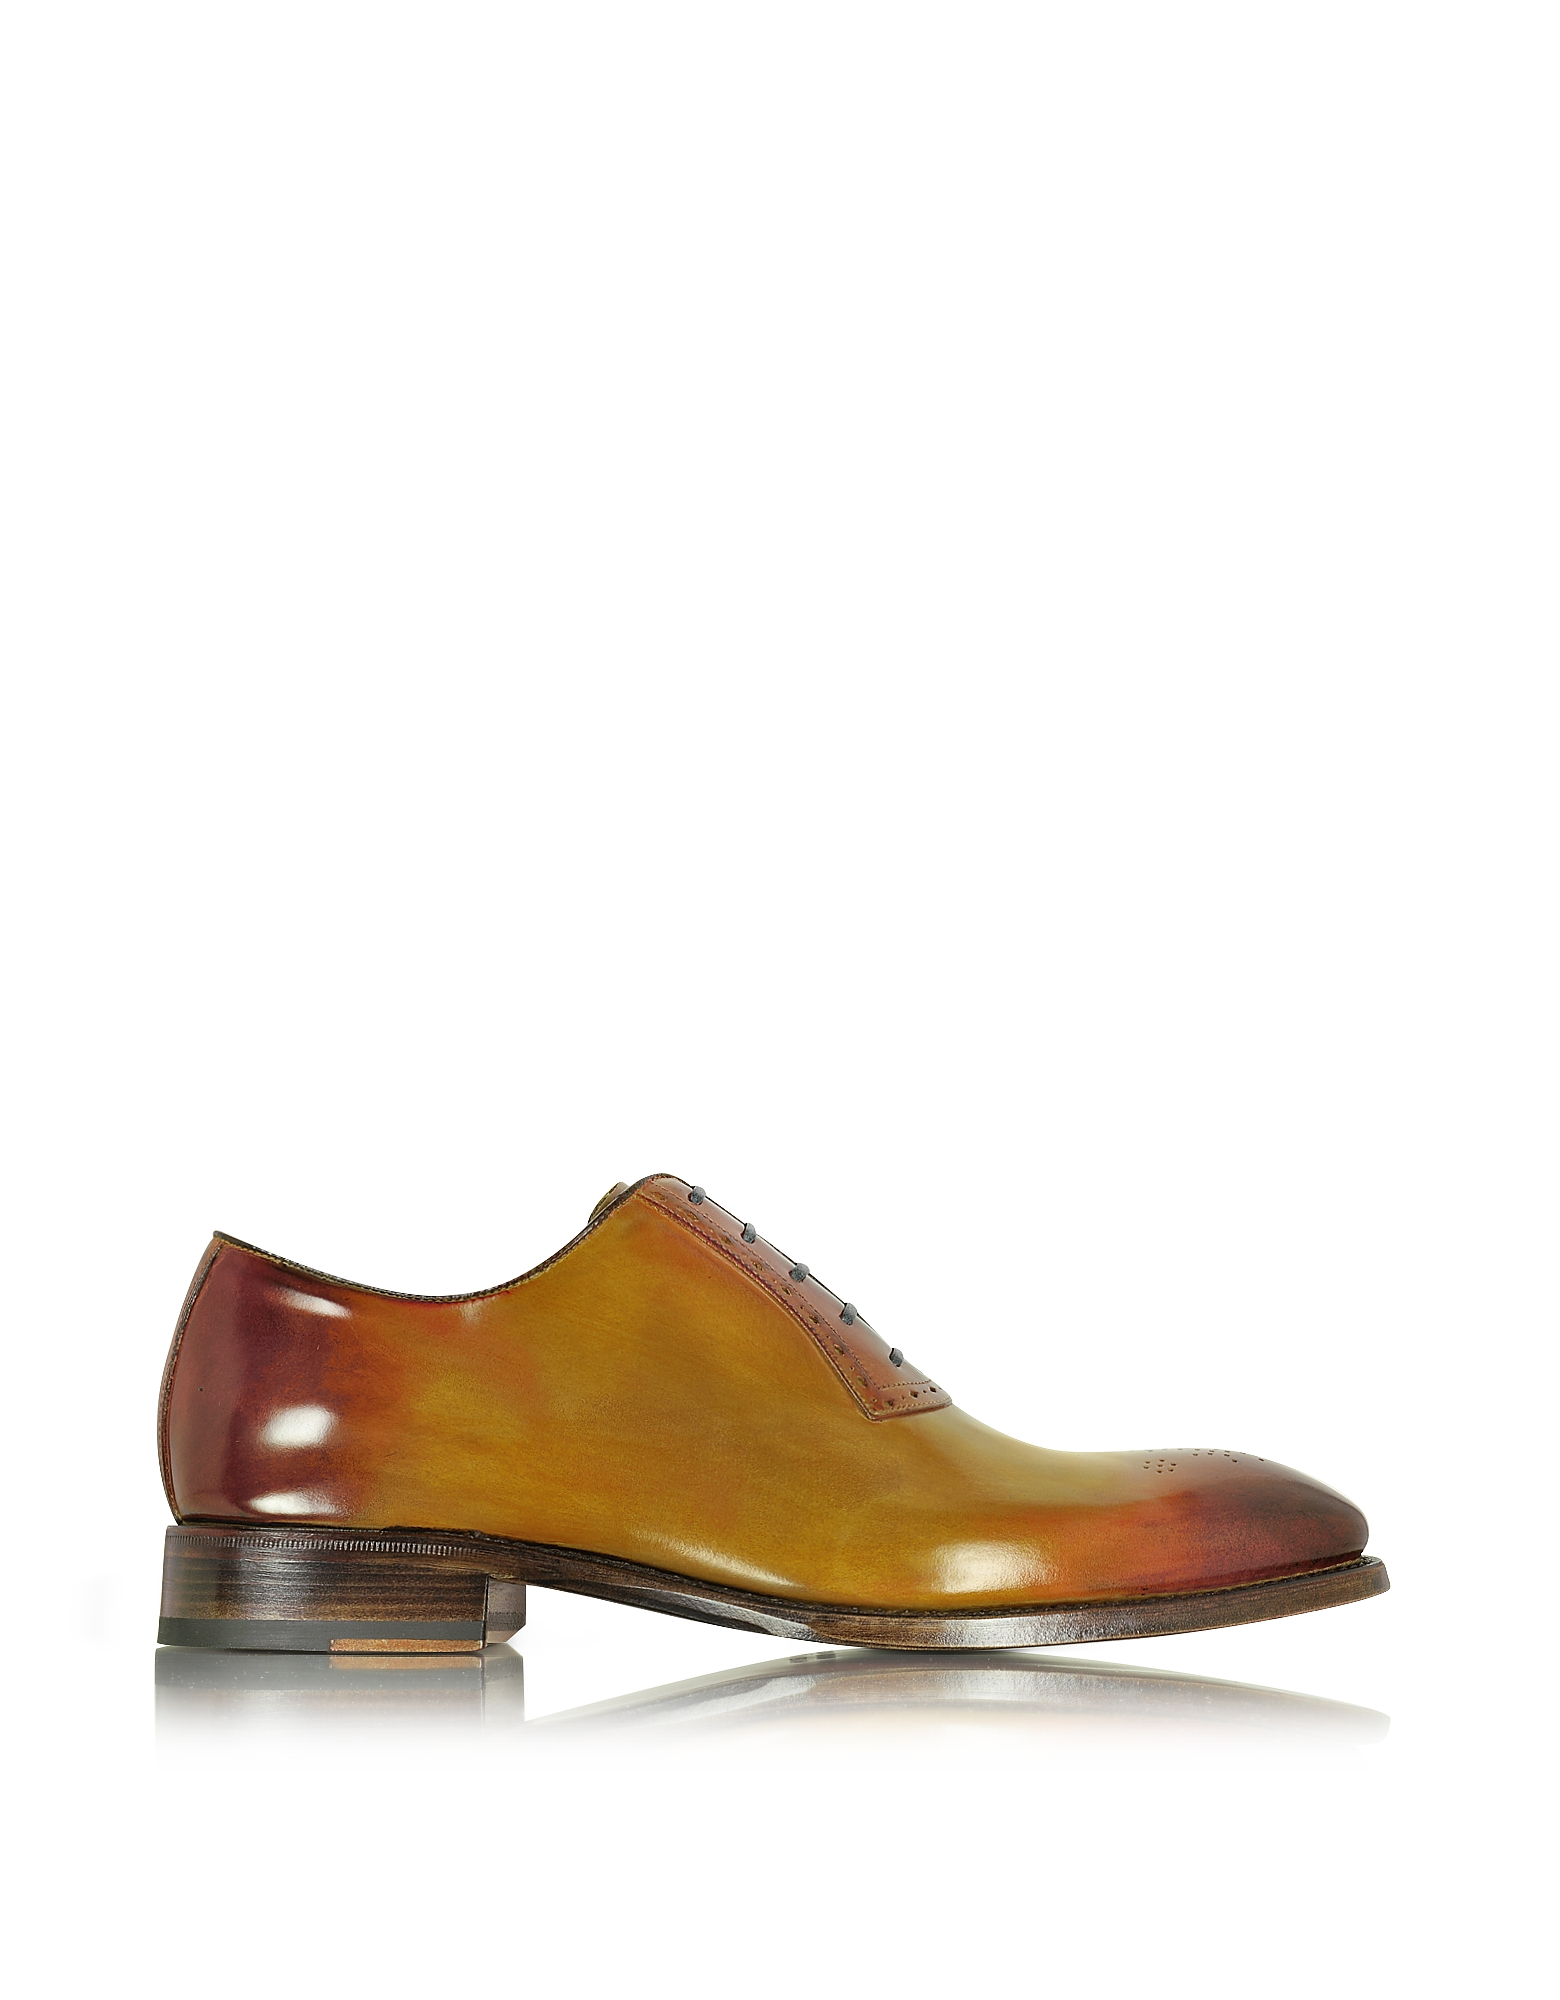 Forzieri Italian Handcrafted Two-Tone Leather Oxford Shoe